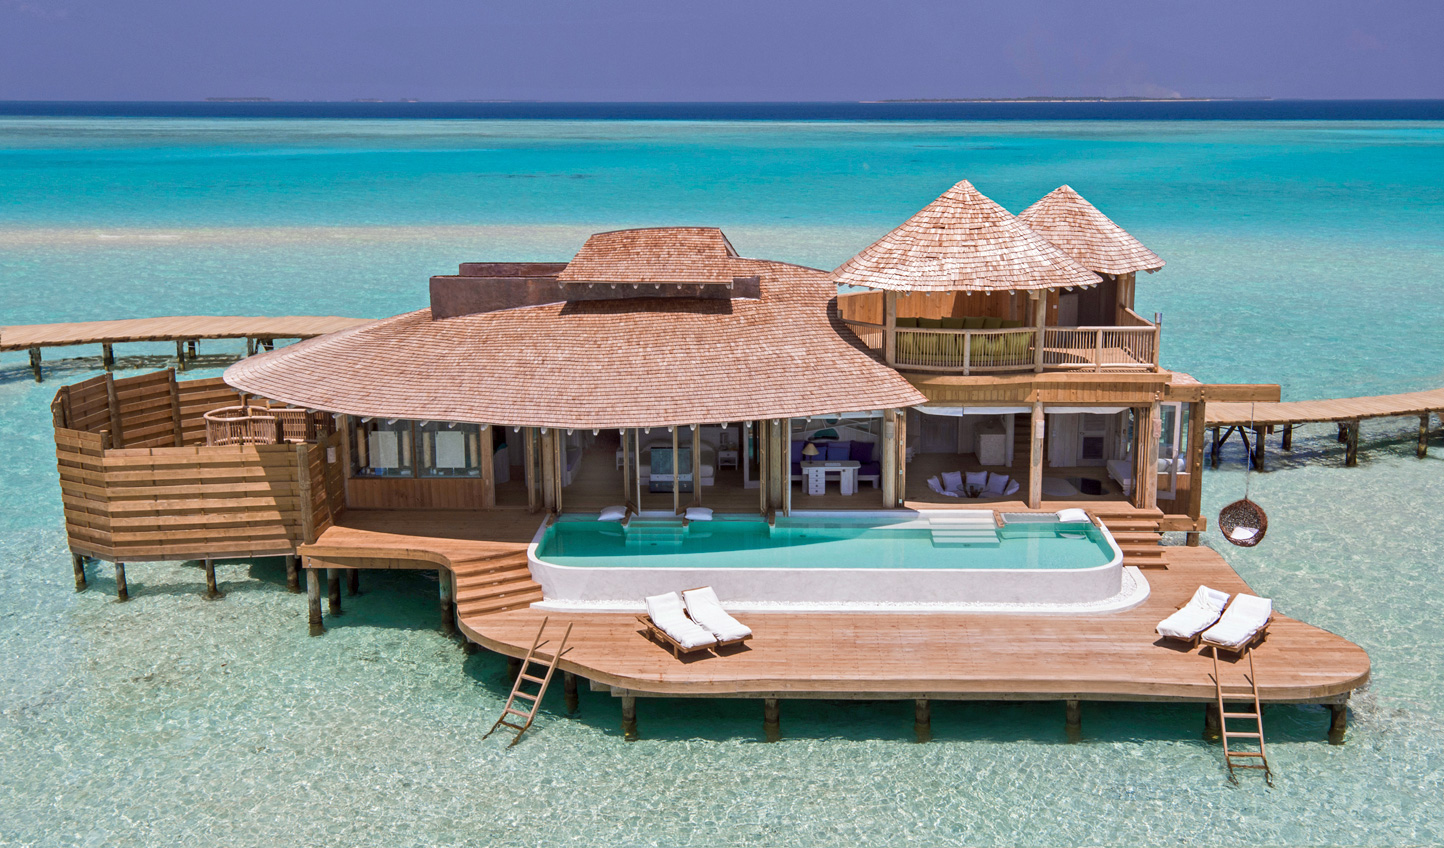 Retreat to an overwater paradise